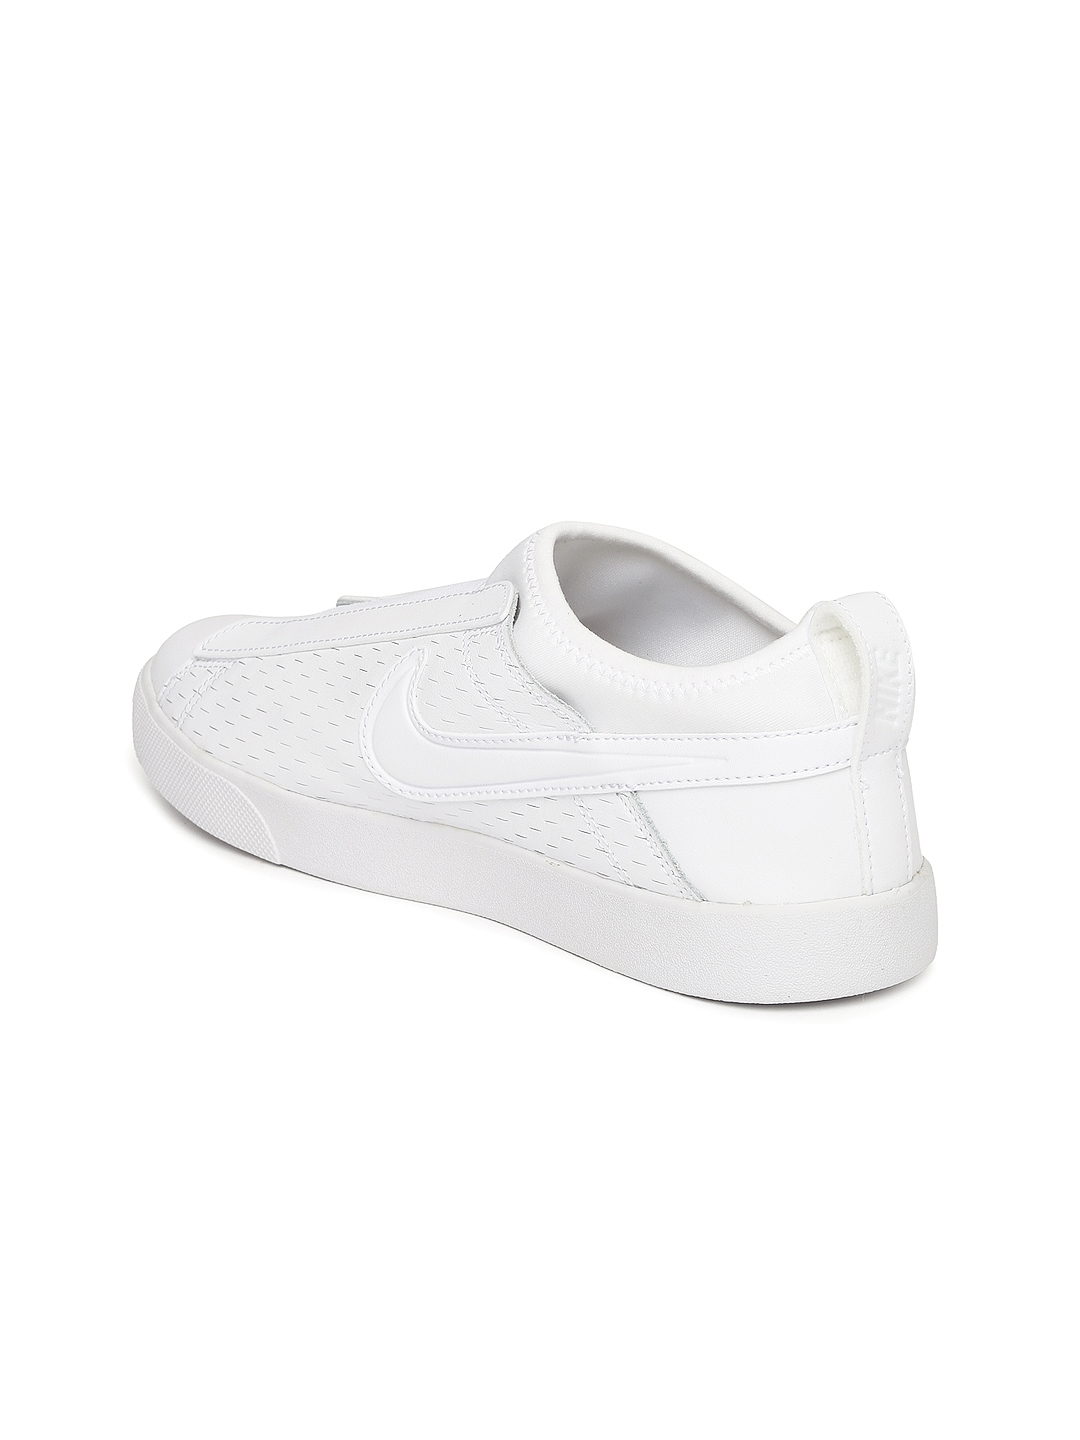 7db56381fd6 Buy Nike Women White Leather Racquette 17 Slip On Sneakers - Casual ...